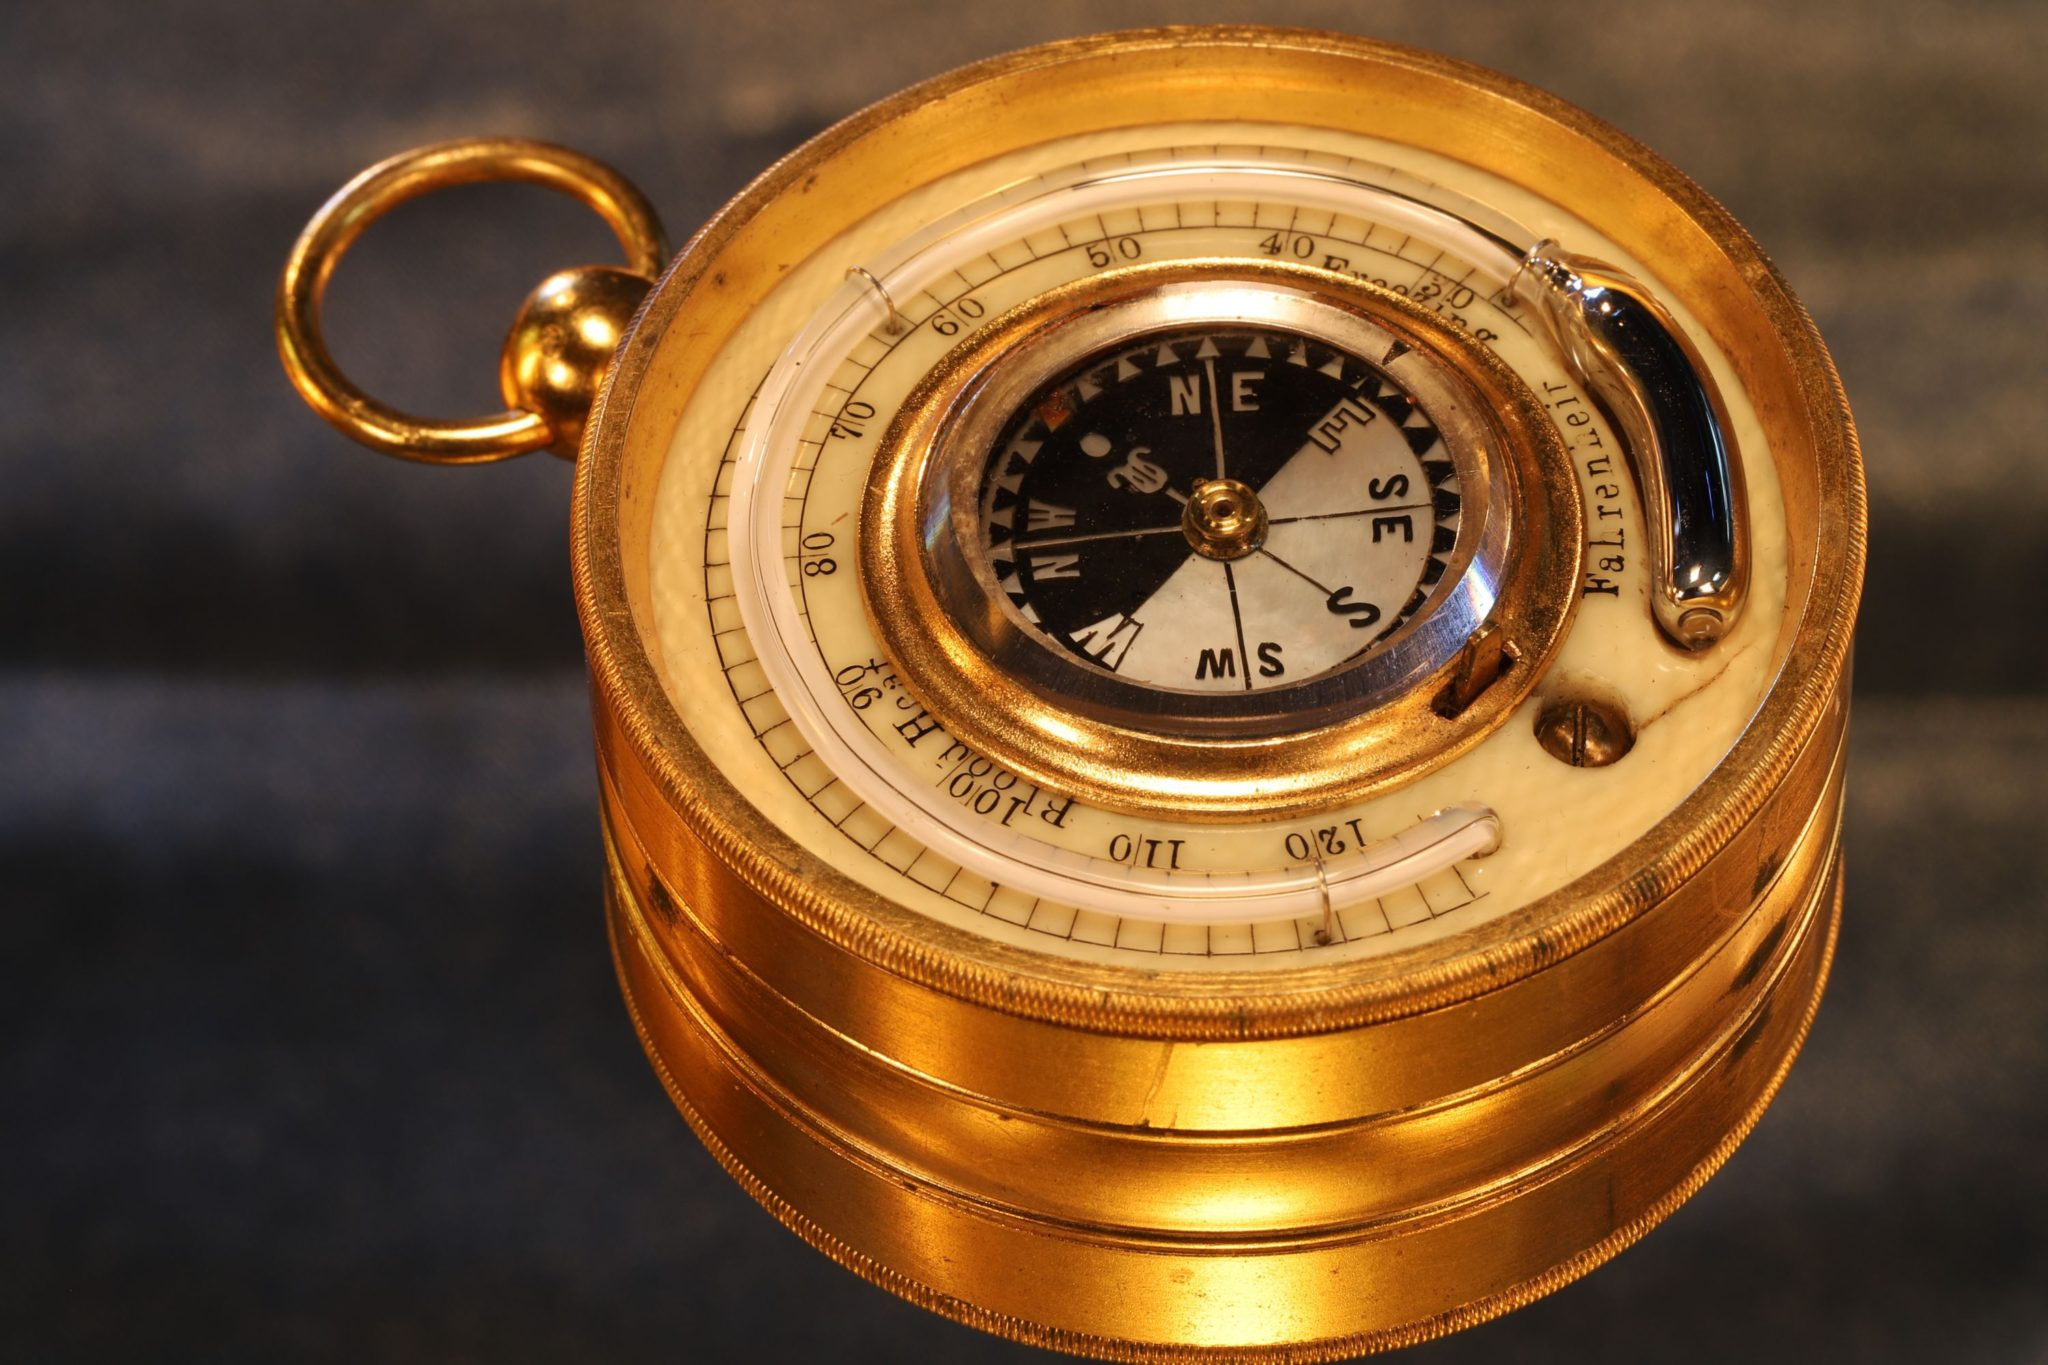 Image of Pocket Barometer Compendium by Dollond Retailed by Hill c1870